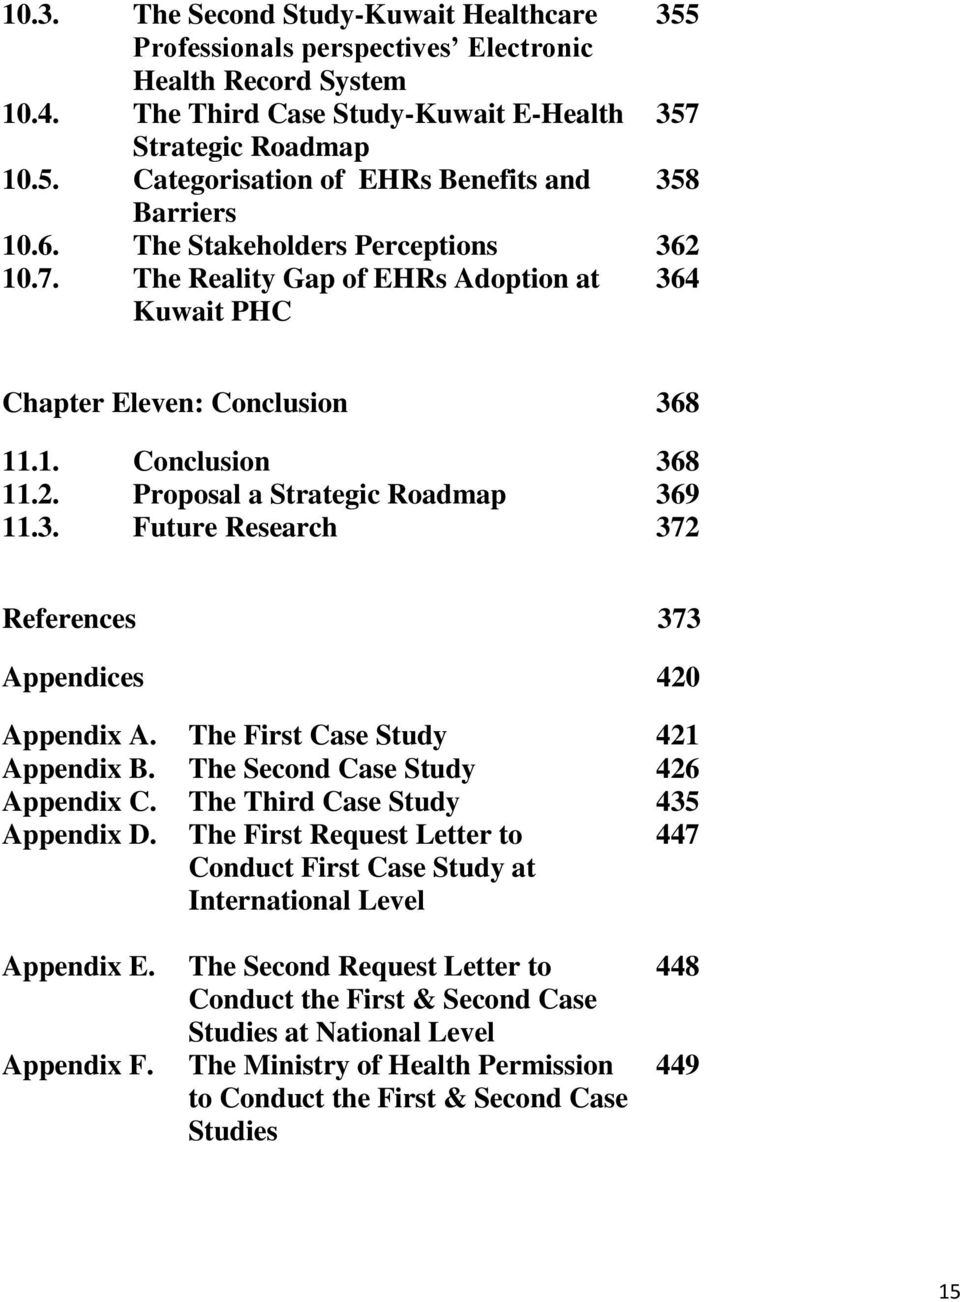 The First Case Study 421 Appendix B. The Second Case Study 426 Appendix C. The Third Case Study 435 Appendix D.